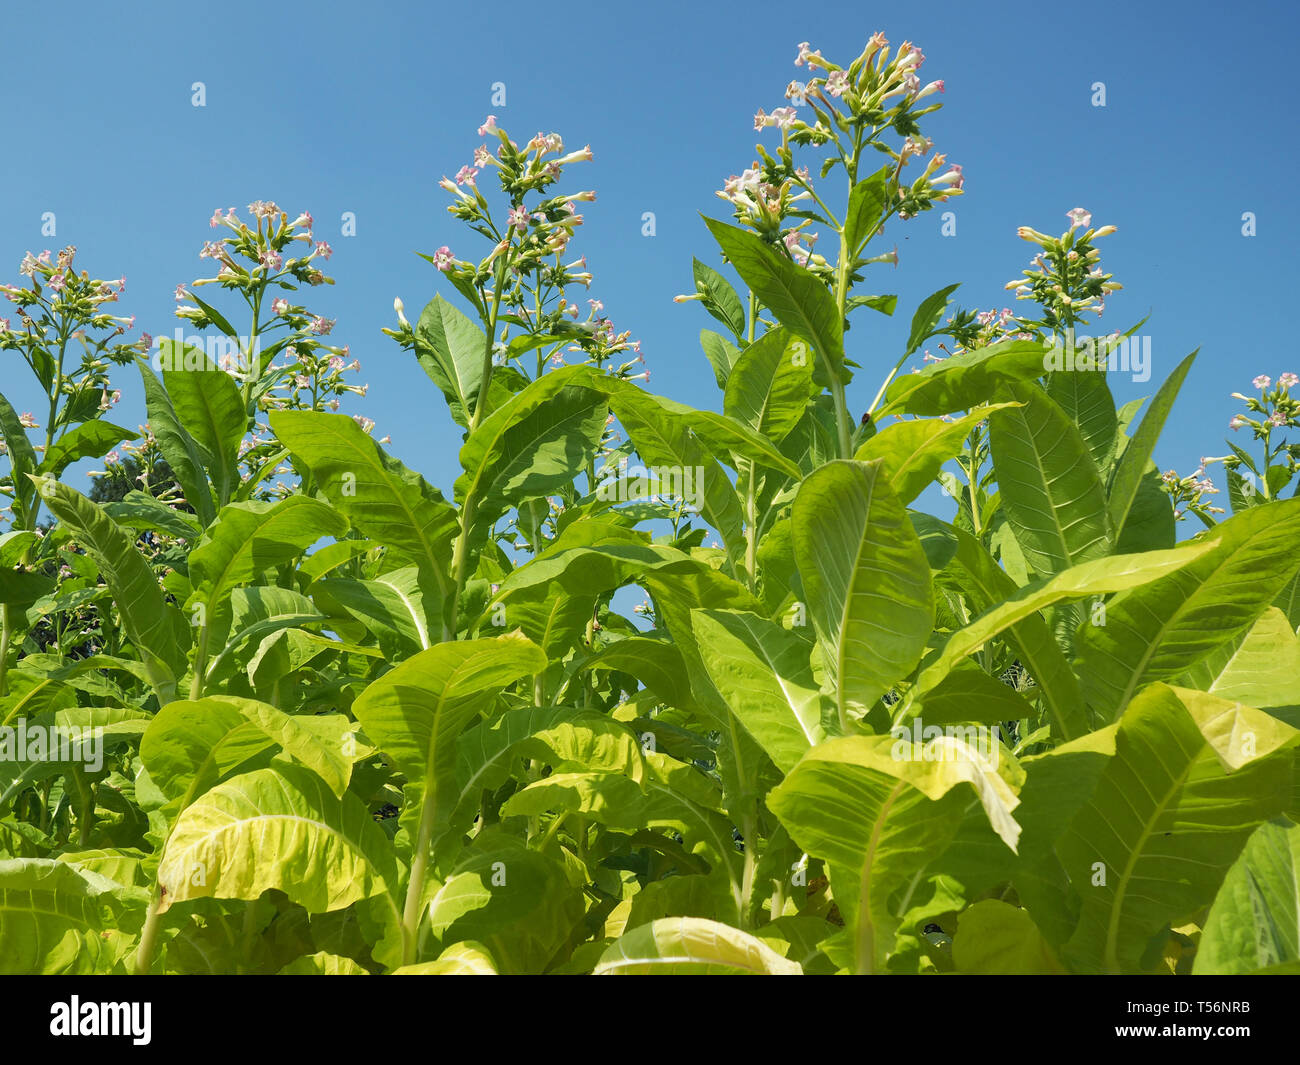 Green Tobacco Leaves and Blossoms - Stock Image